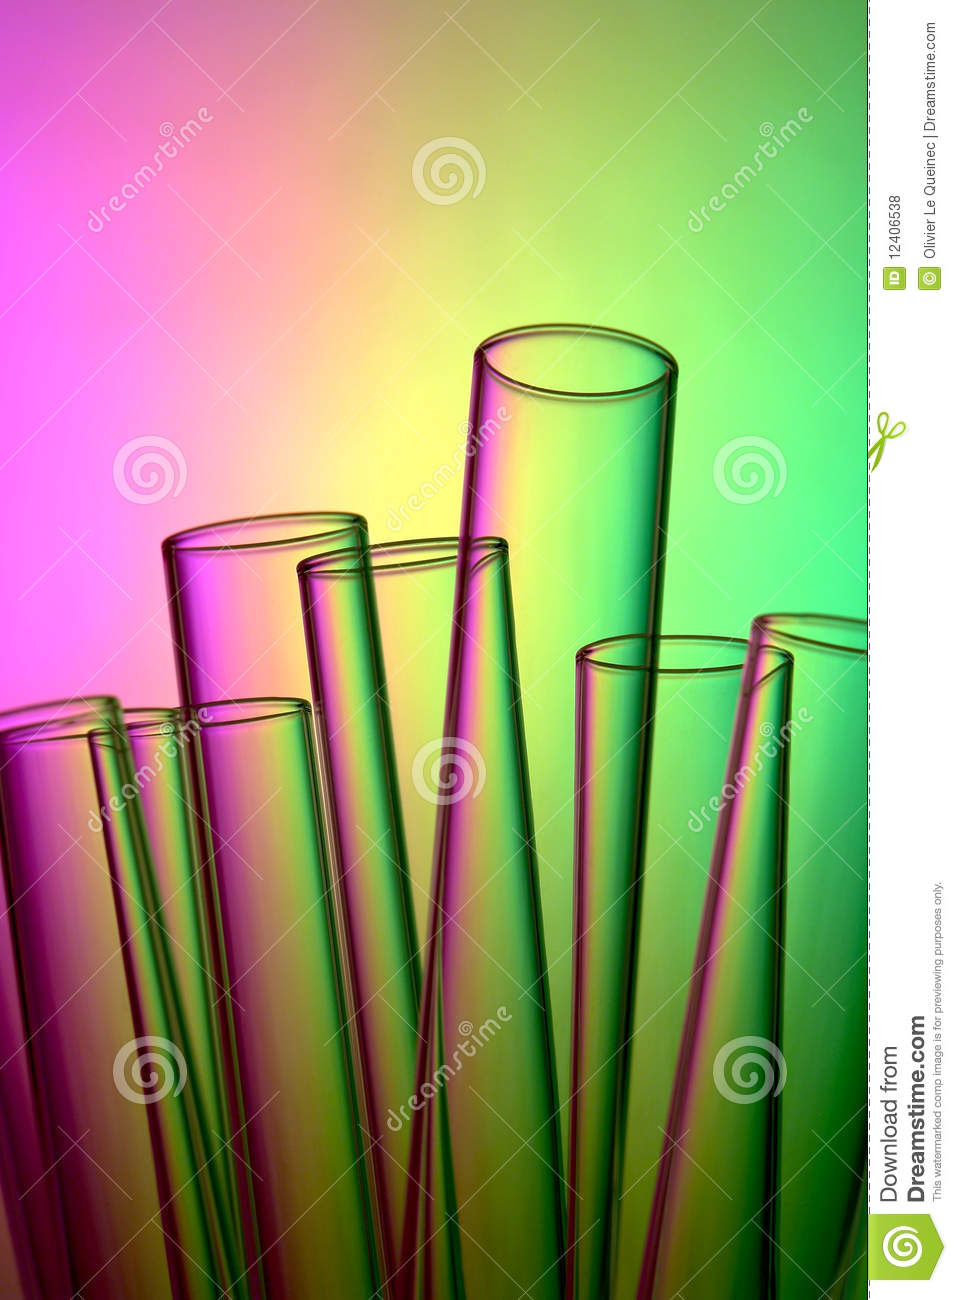 external image laboratory-test-tubes-science-research-lab-12406538.jpg